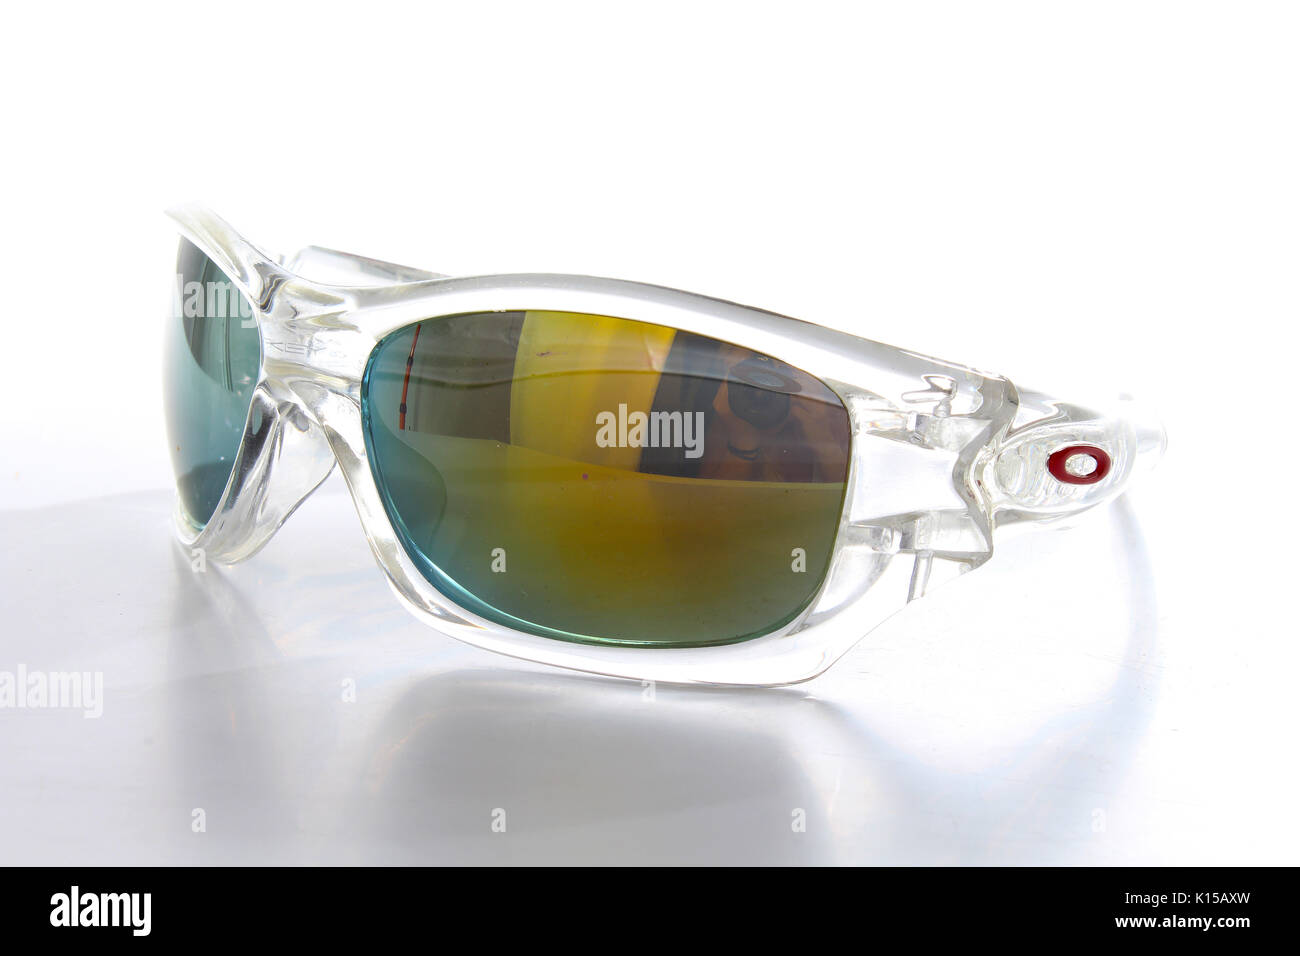 10028a1a75 Oakley sunglasses Stock Photo  155626321 - Alamy